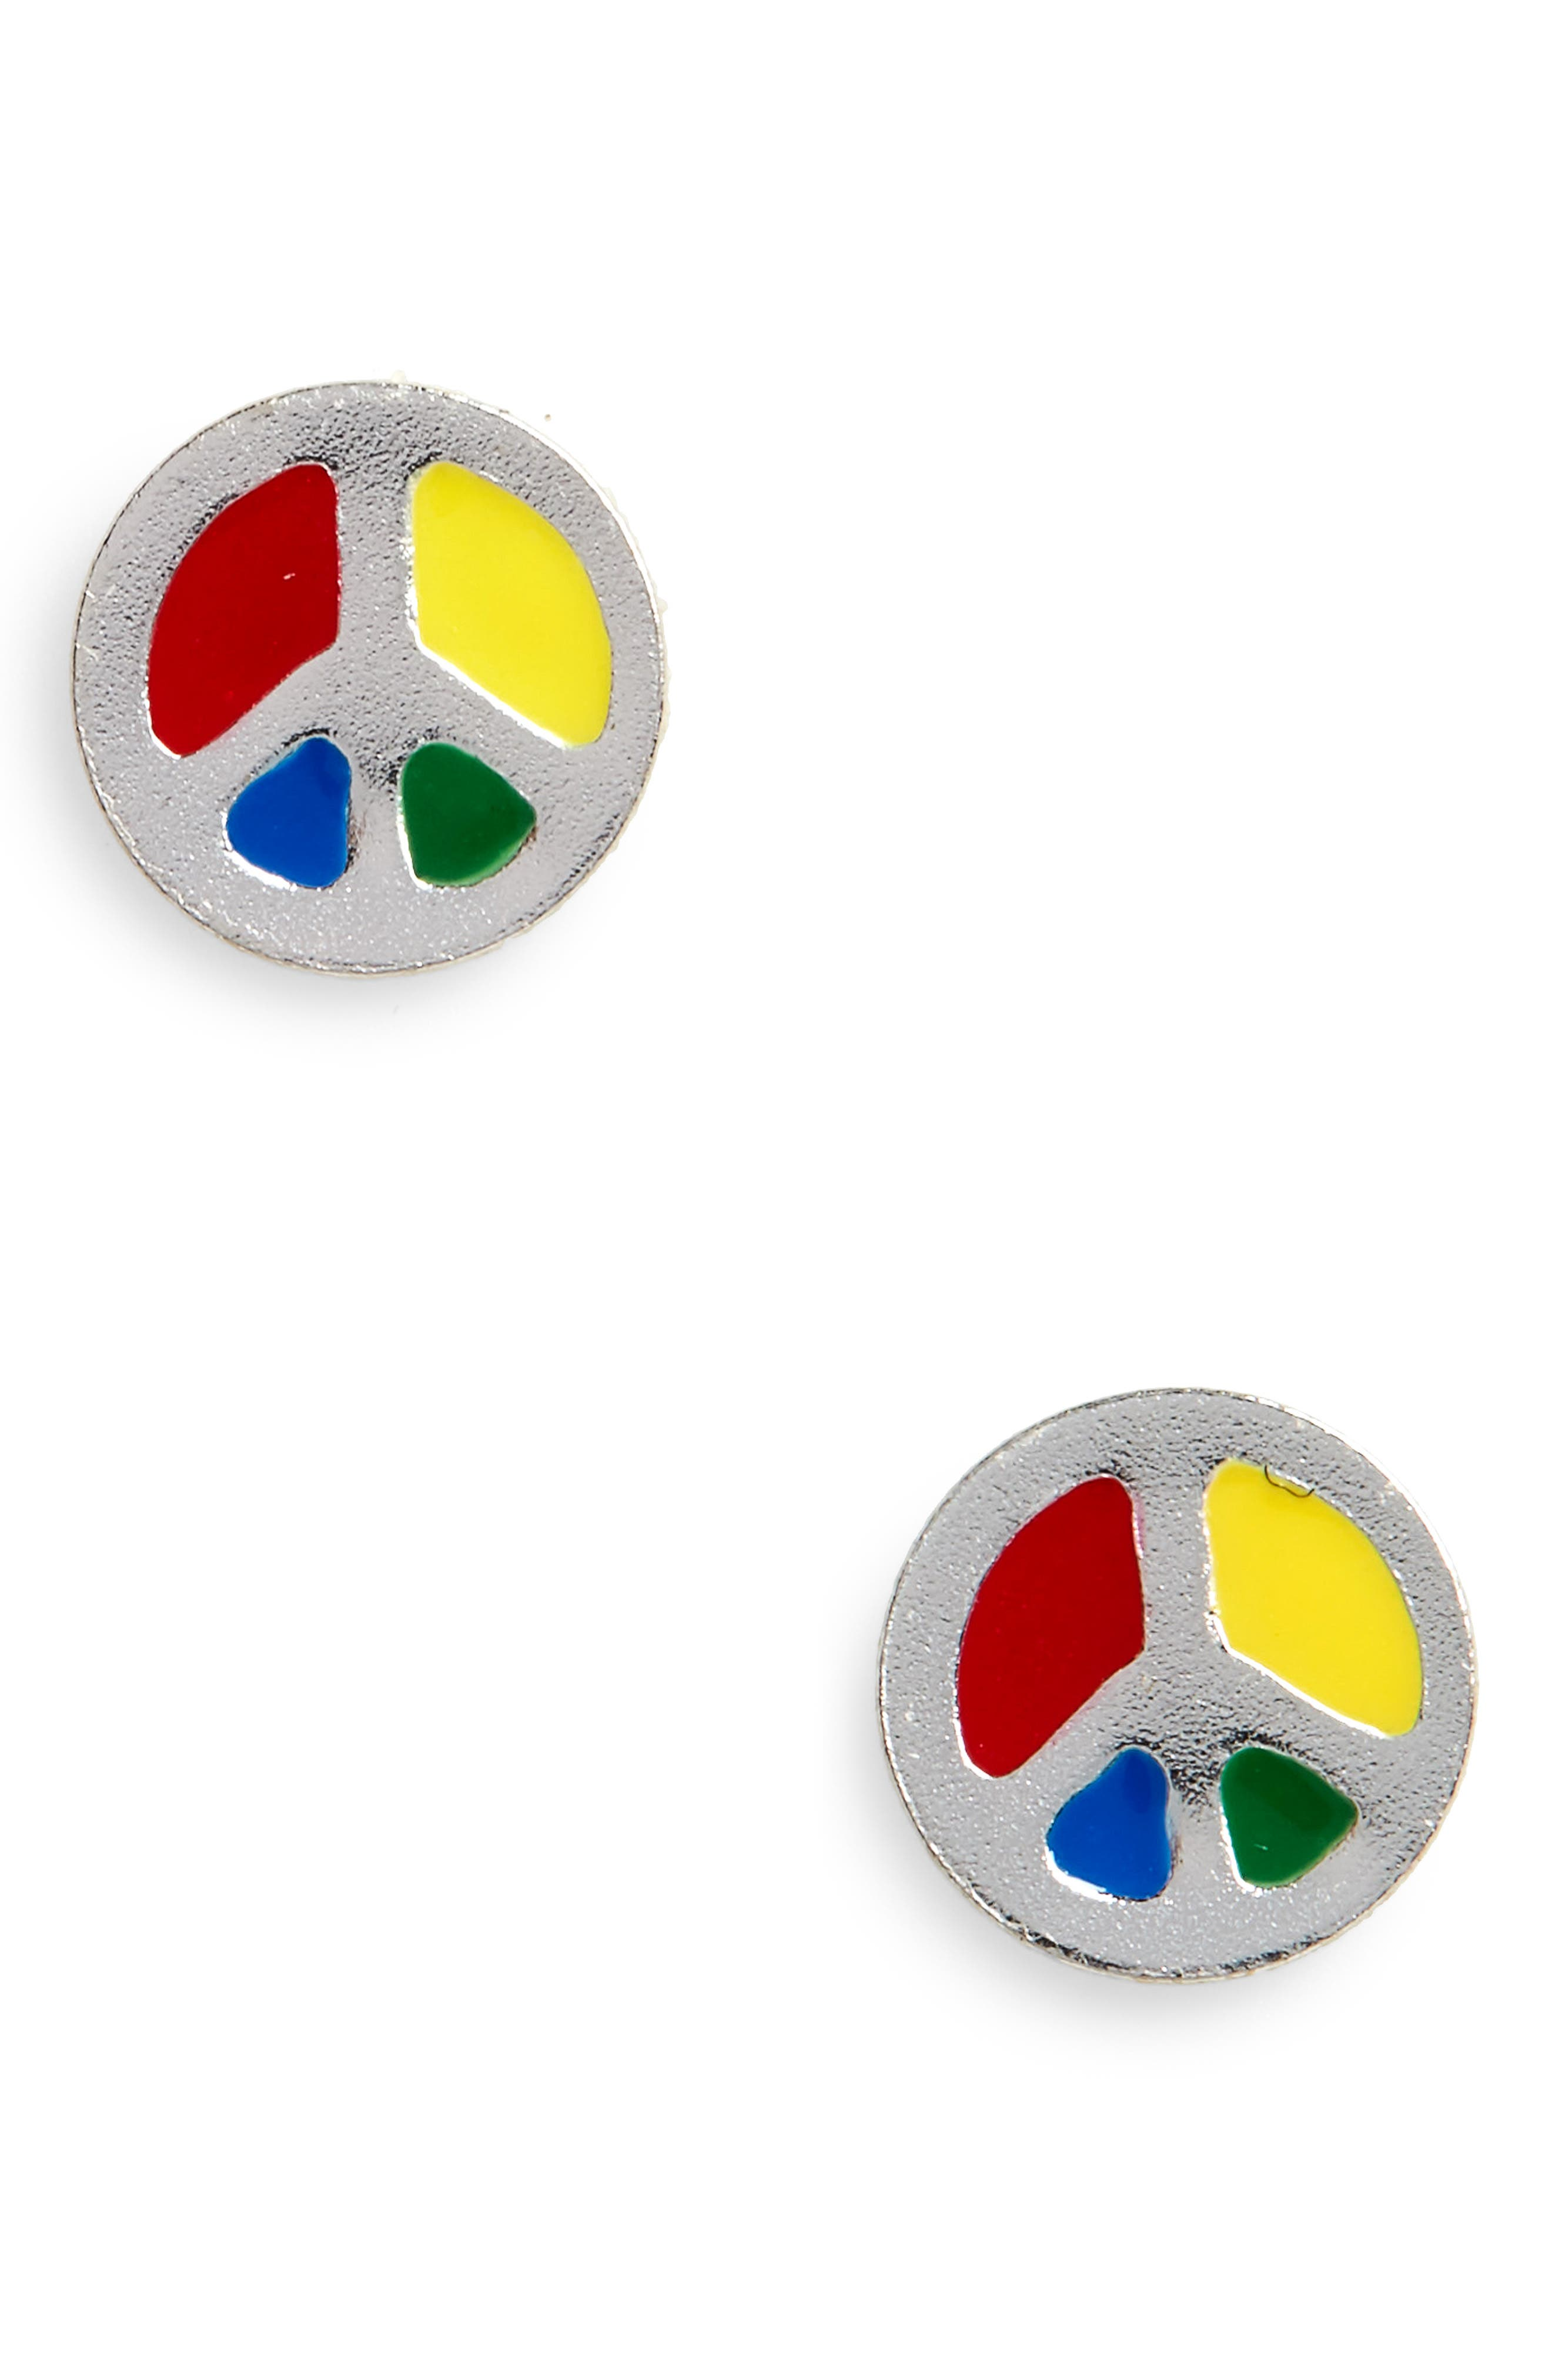 Peace Sign Sterling Silver Stud Earrings,                             Main thumbnail 1, color,                             Red/ Blue/ Yellow